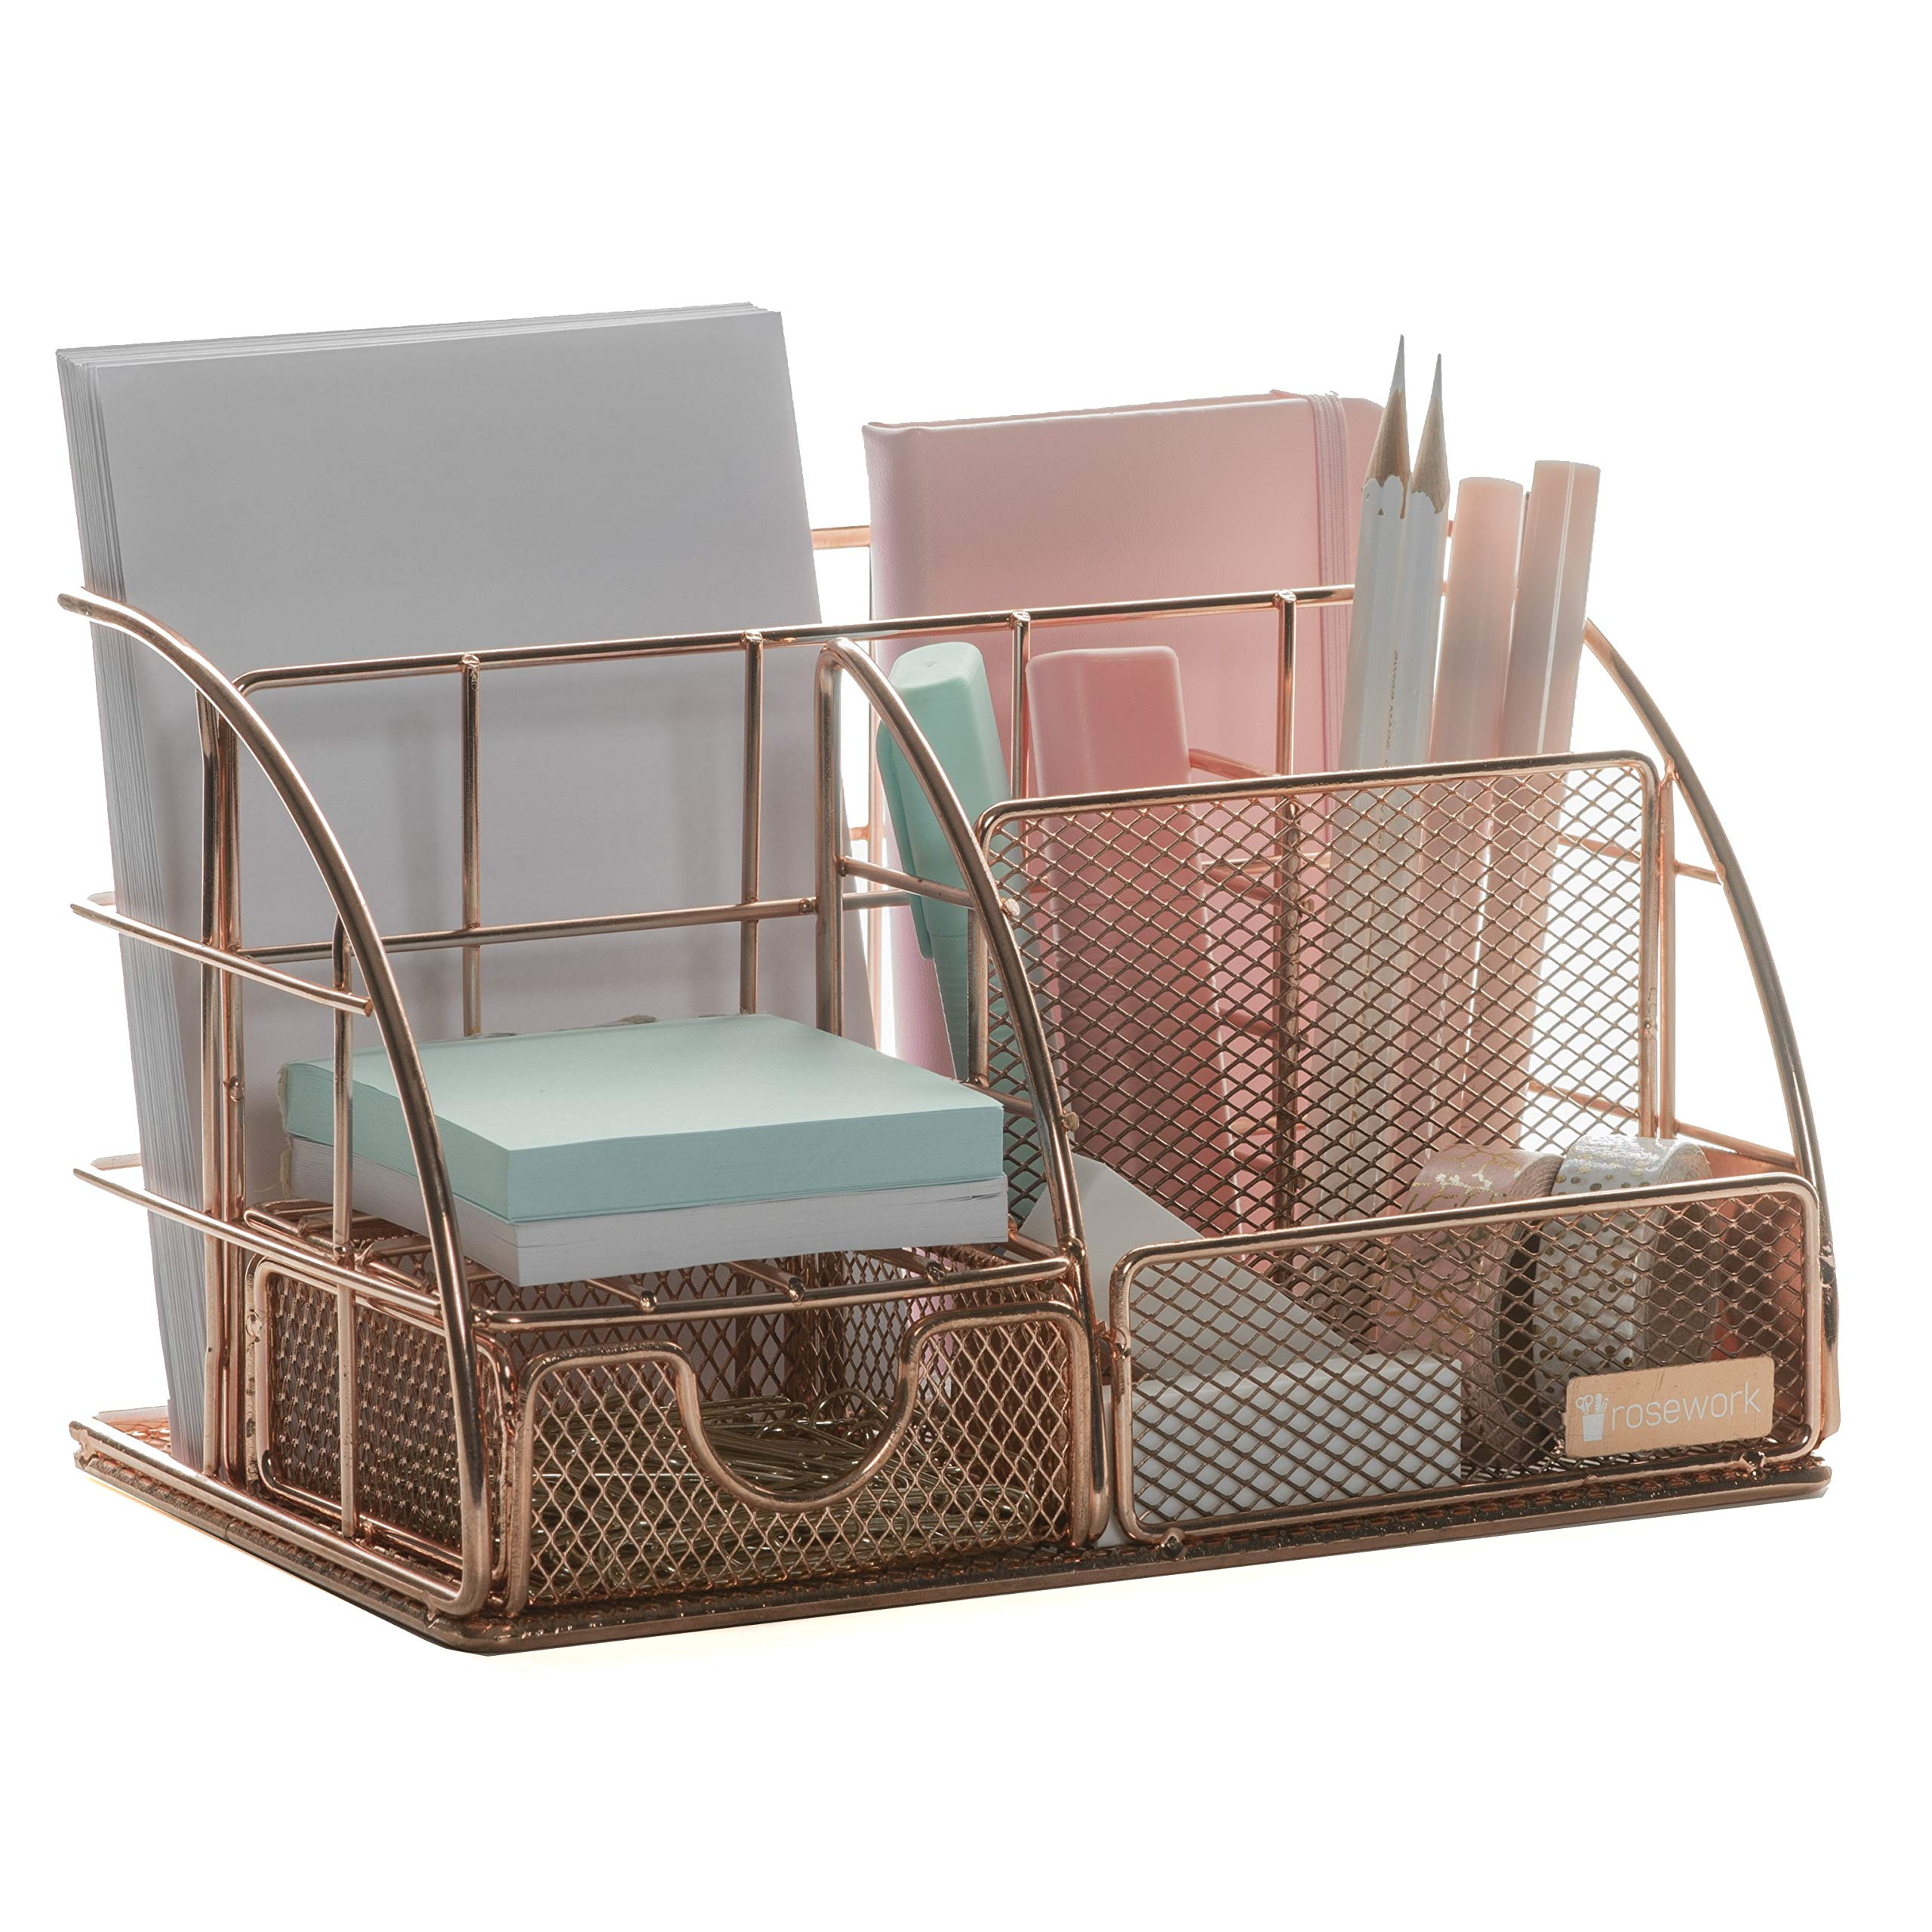 Rosework Rose Gold Desk Organizer for Women, All in One Desktop Organizer with Pen Holder, Pencil Holder and Paper Organizer, Office Organizer for Home Office Supplies and Desk Accessories.